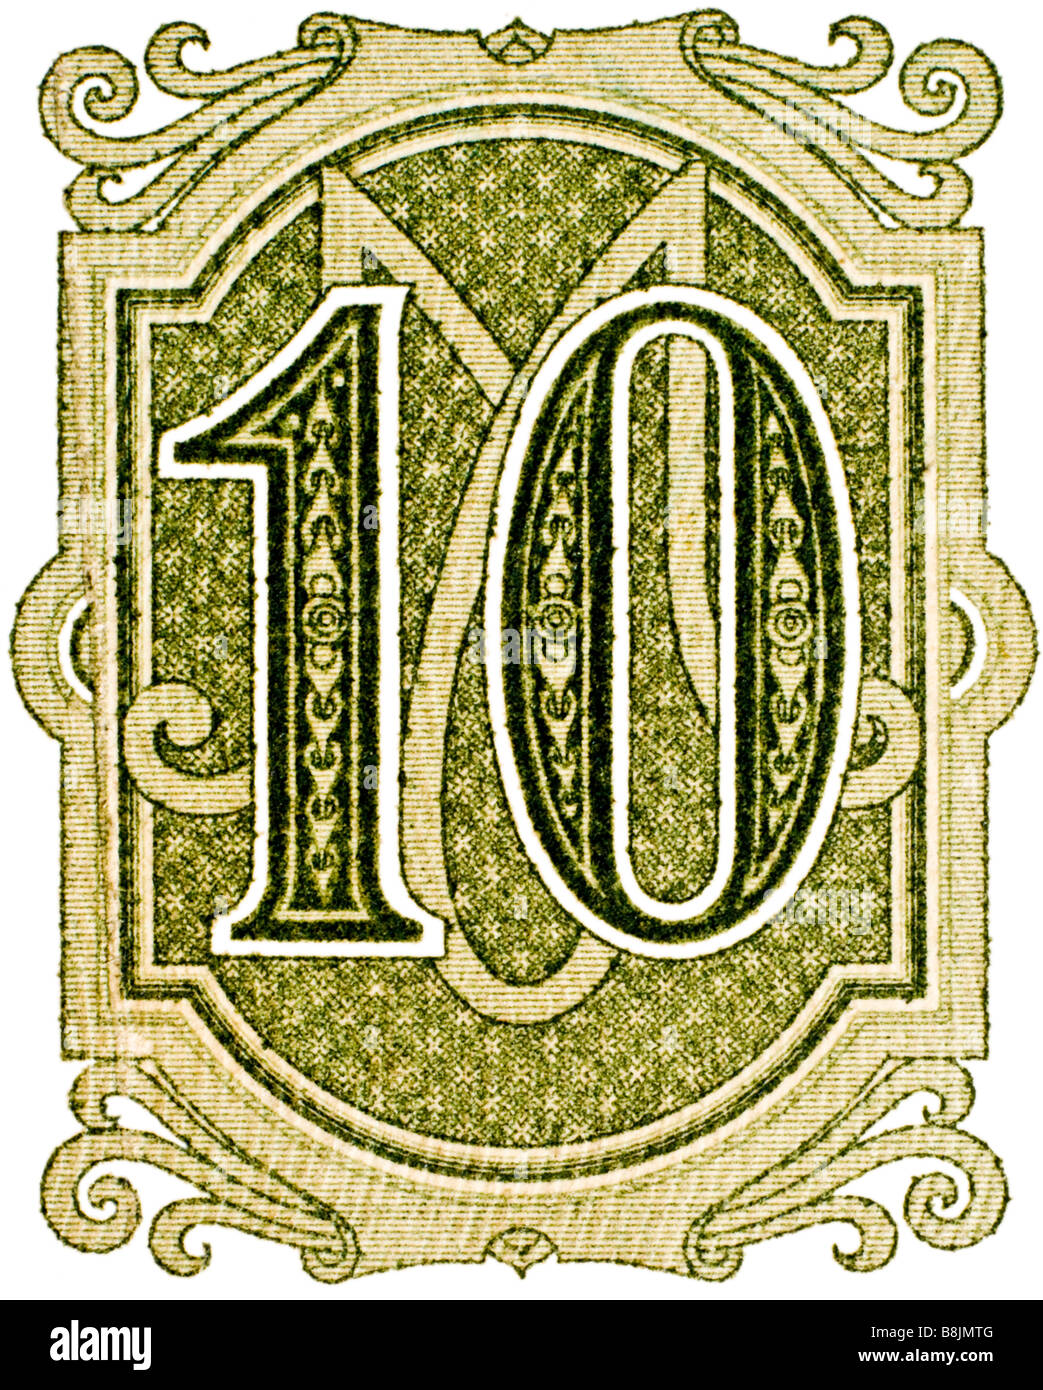 Number 10 from German ten mark banknote of 1906 - Stock Image